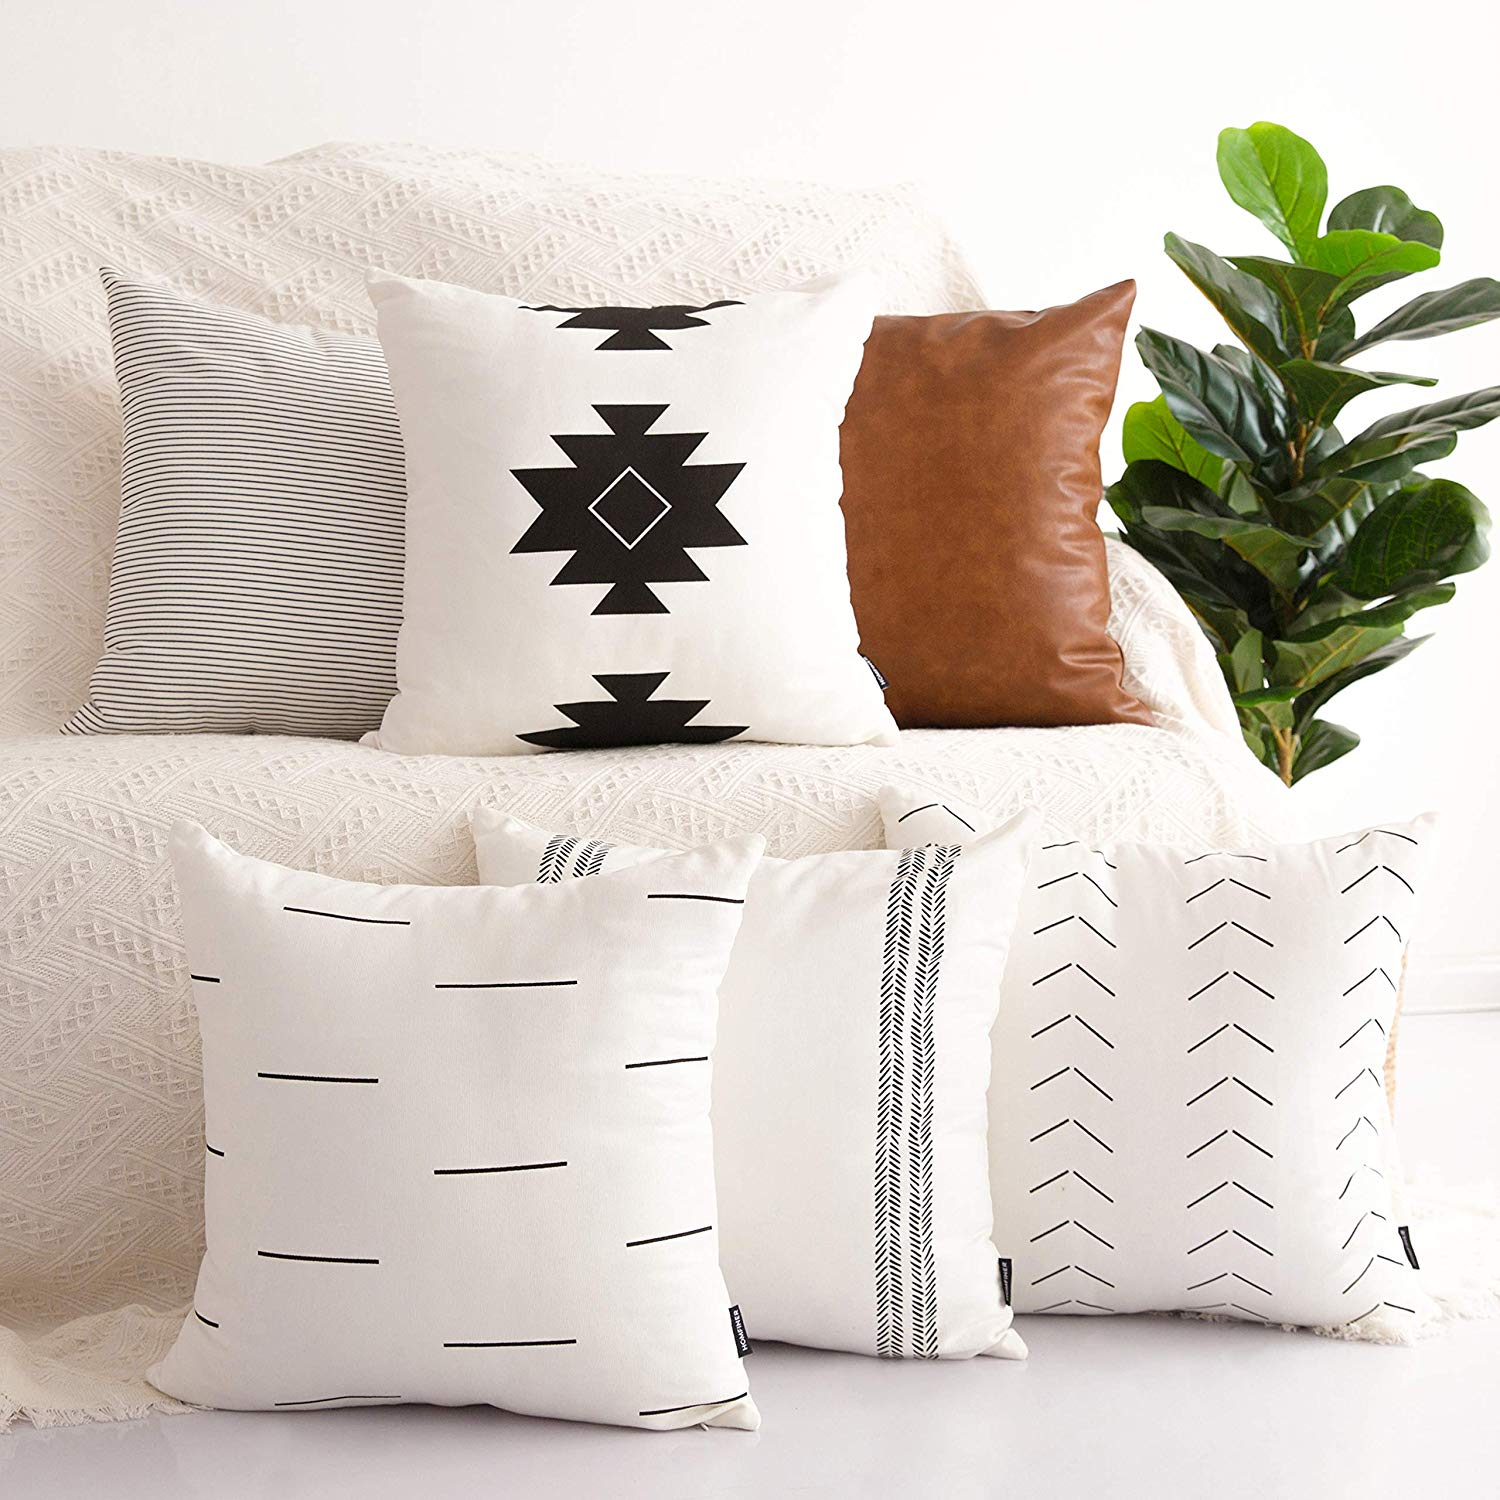 Scandinavian Design pillows